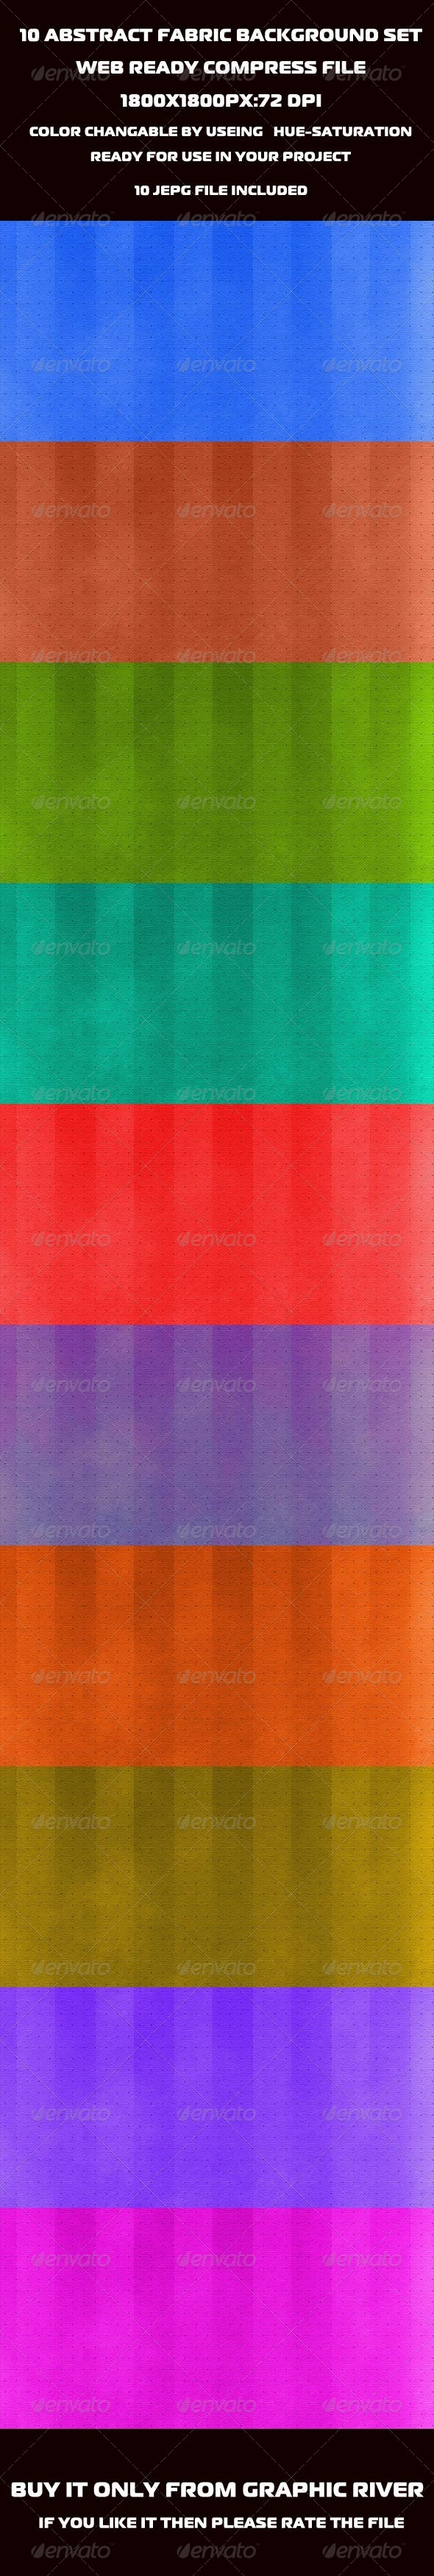 GraphicRiver Abstract Fabric Background Set 3882265